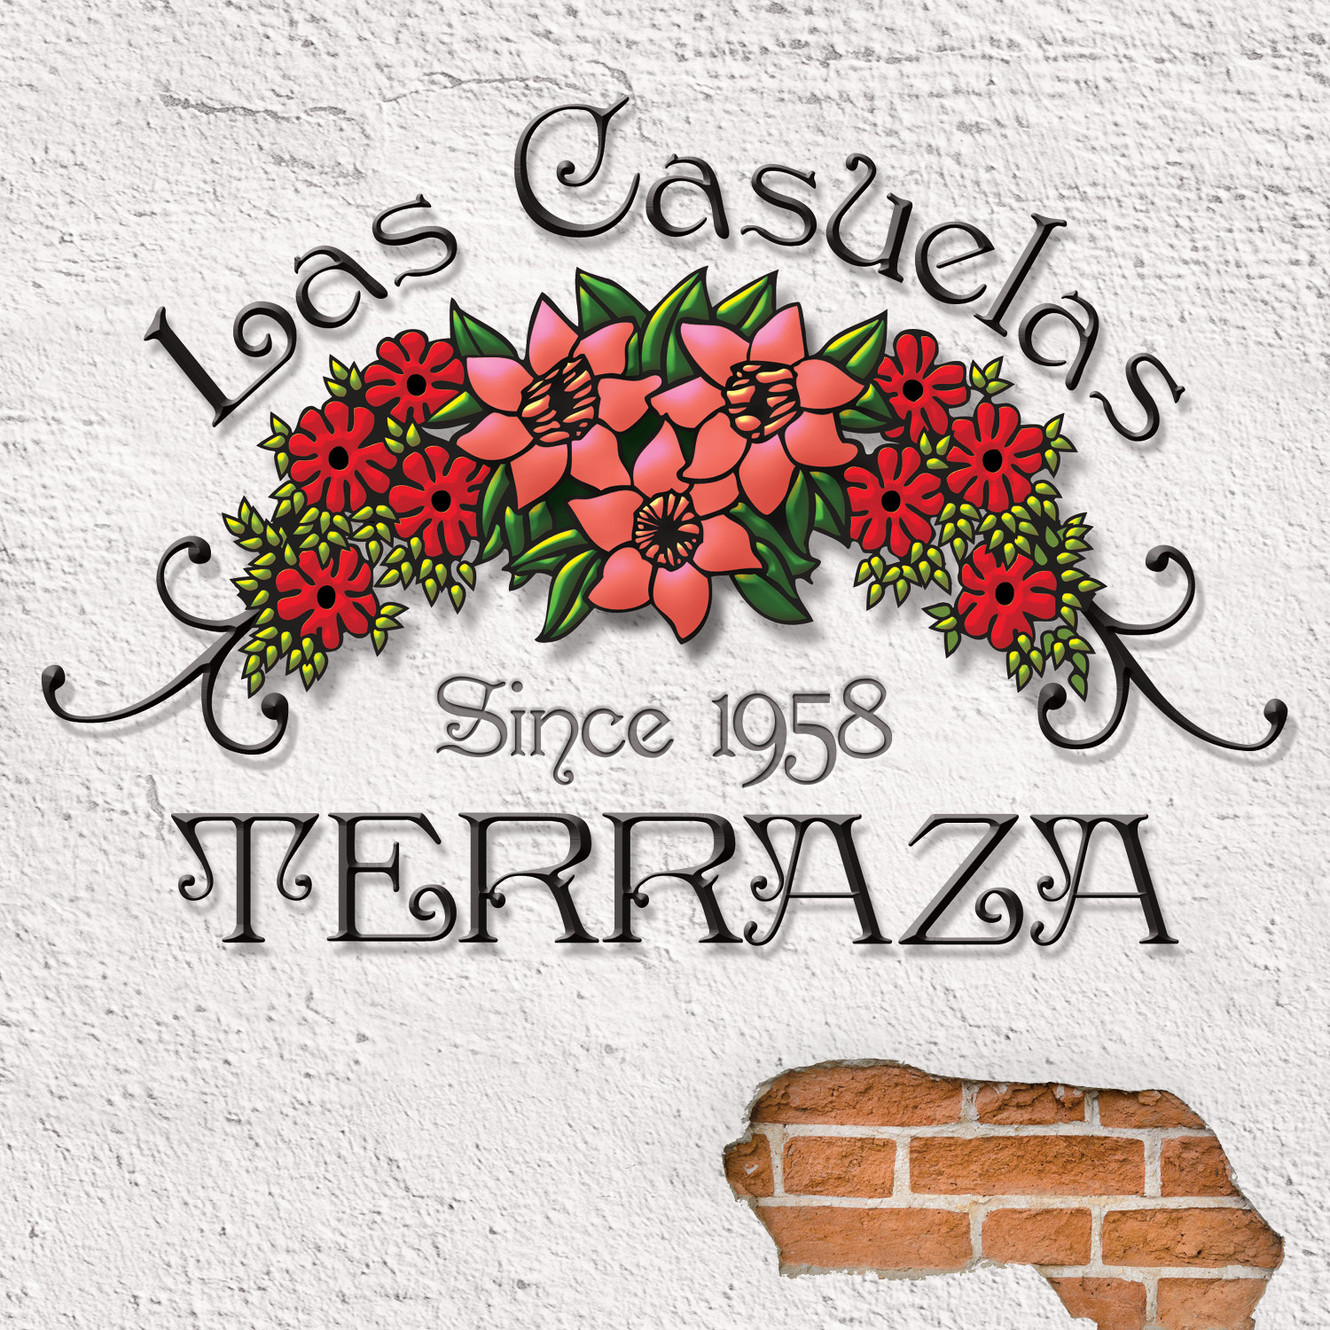 Mexican Food Live Music Palm Springs Las Casuelas Terraza